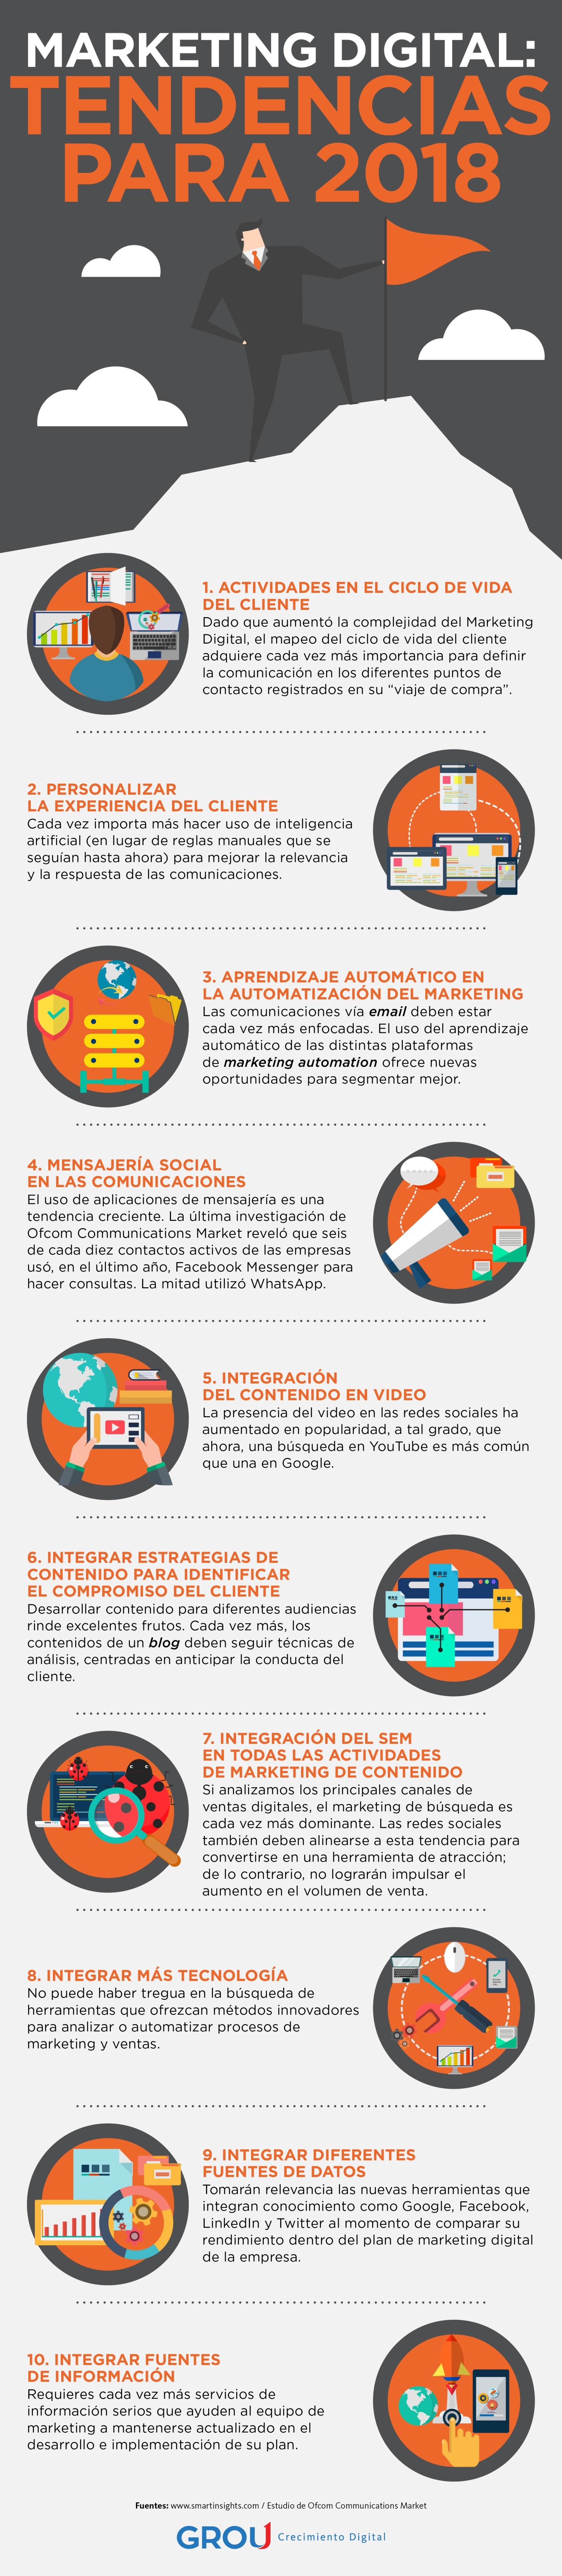 tendencias-marketing-digital-infografia